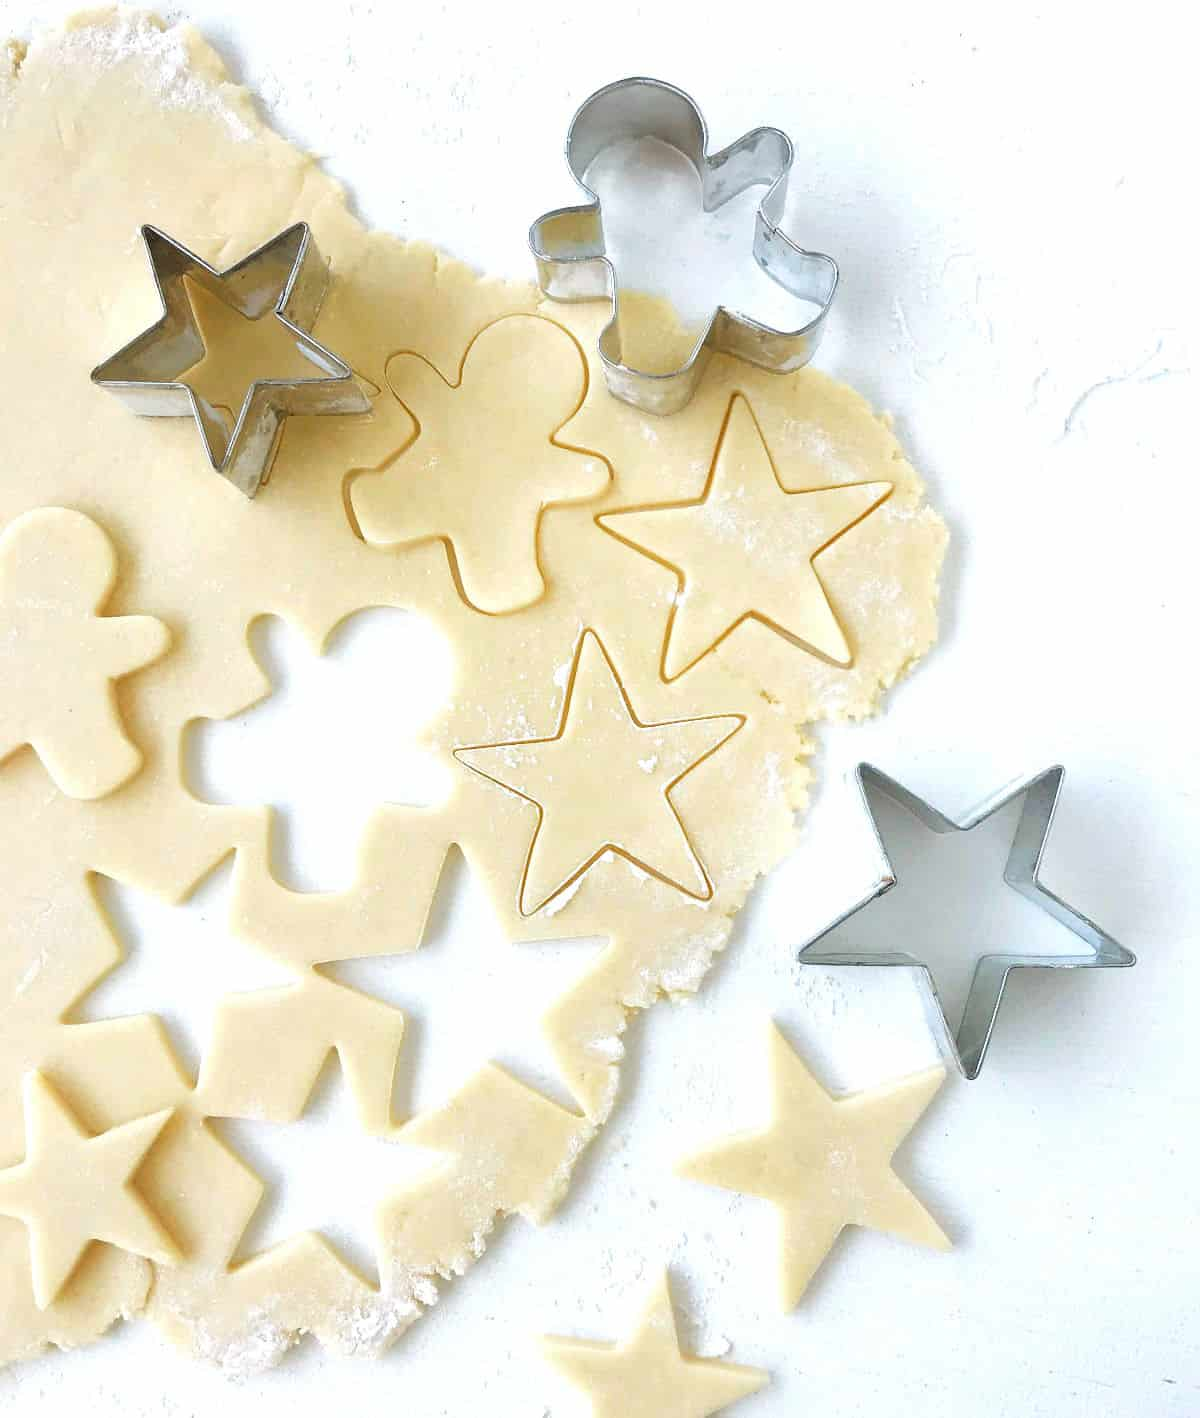 Rolled sugar cookie dough with cut outs and metal cookie shapes, on white surface